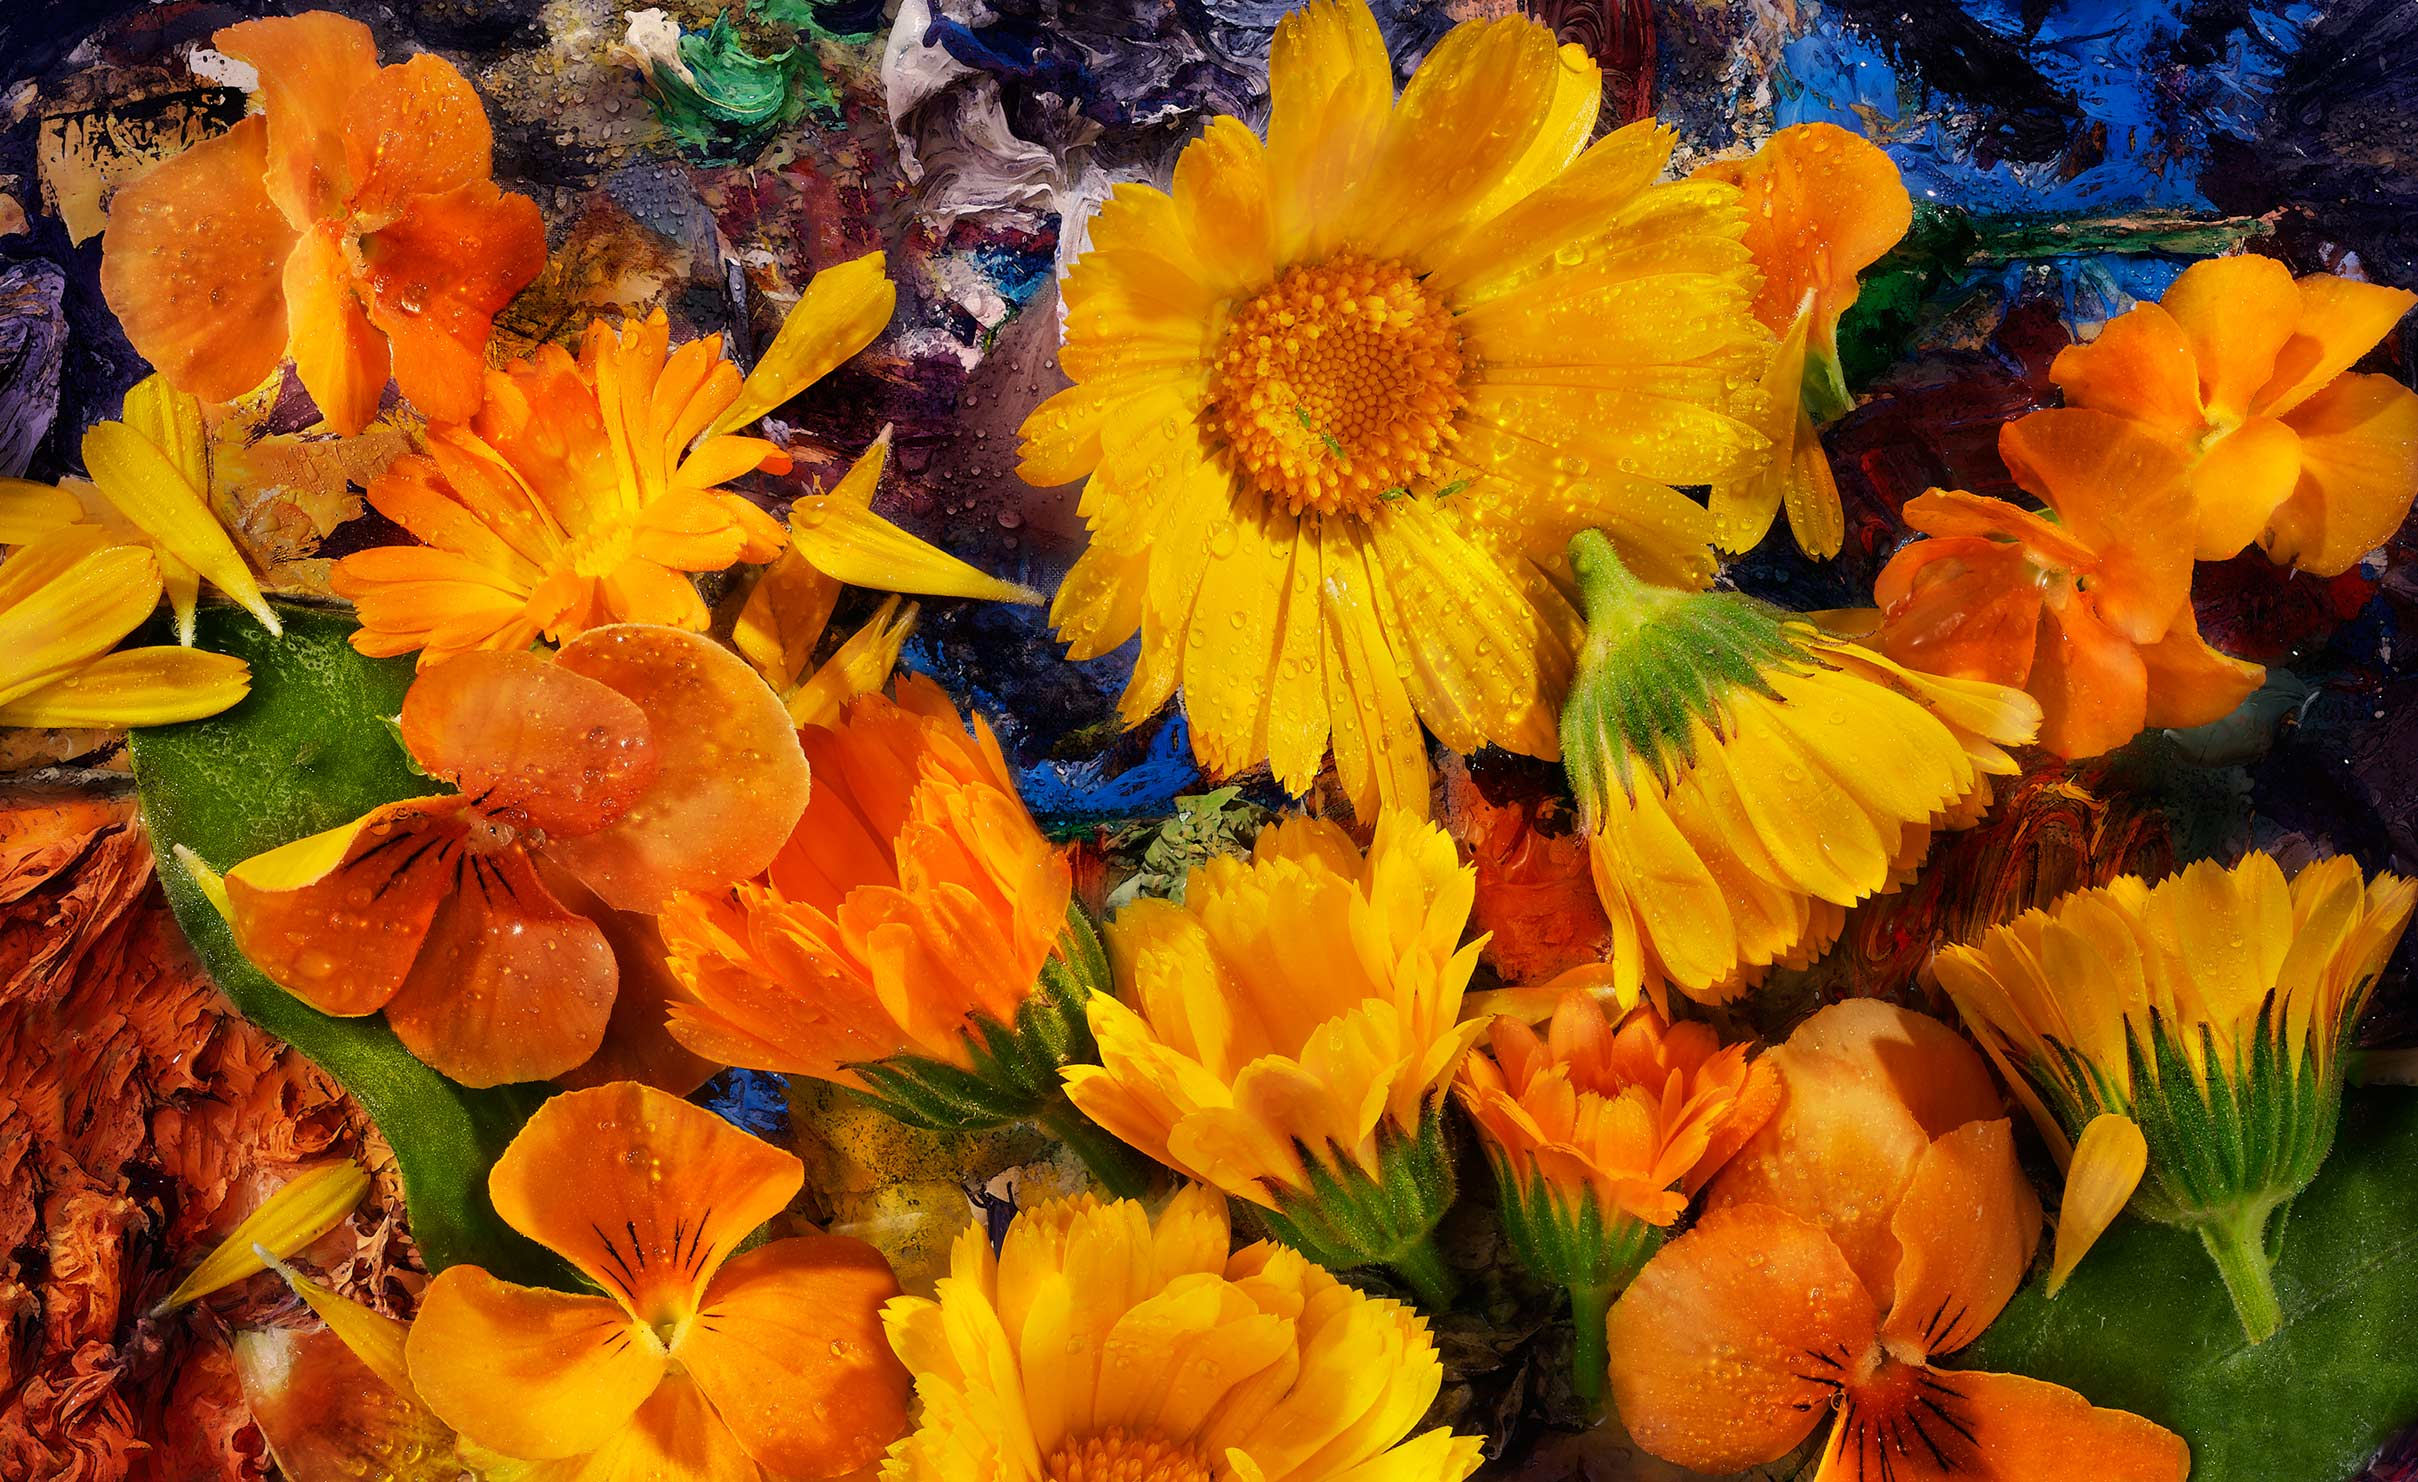 Edible Flowers: Pansies and Calendula